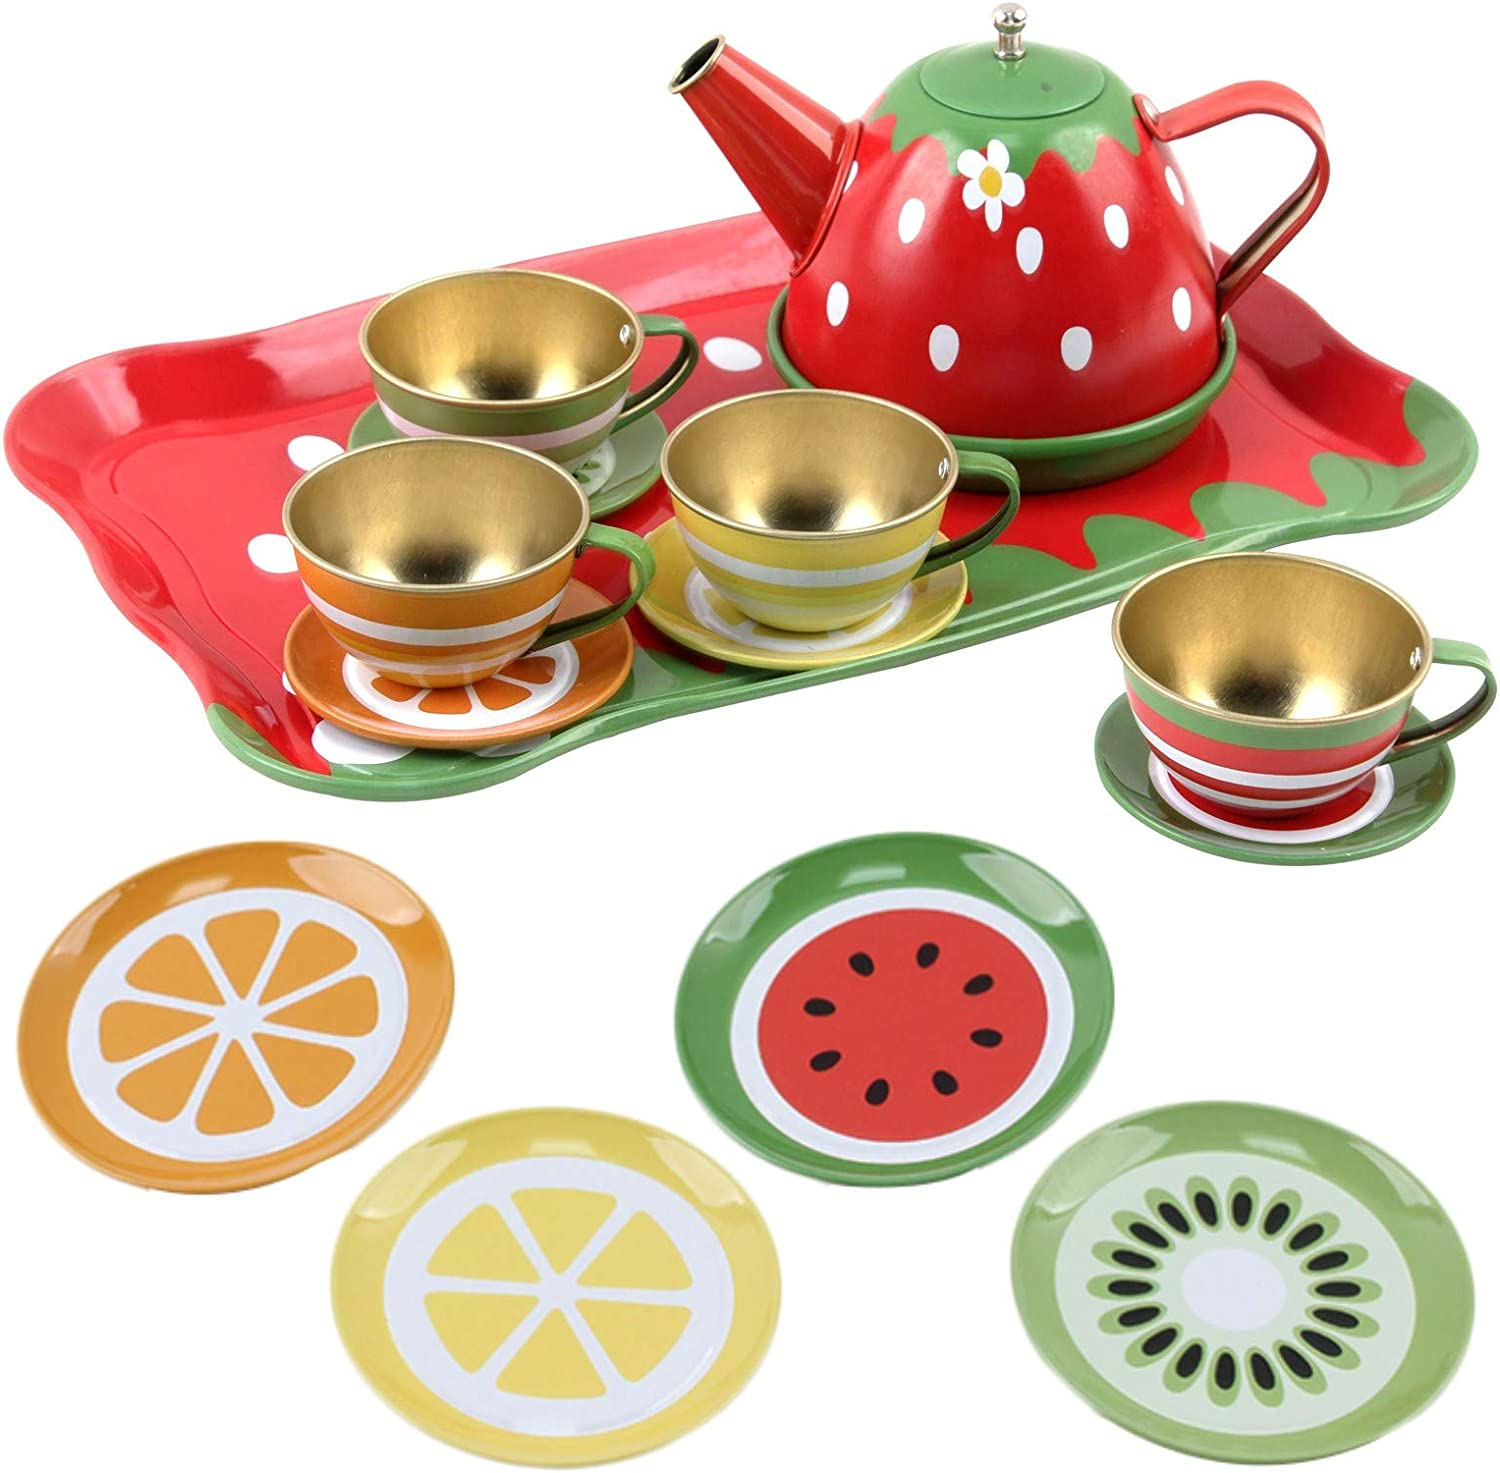 Vokodo Kids Fruit Themed Pretend Play Tea Set 14 Piece Durably Built from Food-Safe Material BPA-Free Kitchen Playset Perfect Early Learning Preschool Toy Great Gift for Children Girls Boys Toddlers